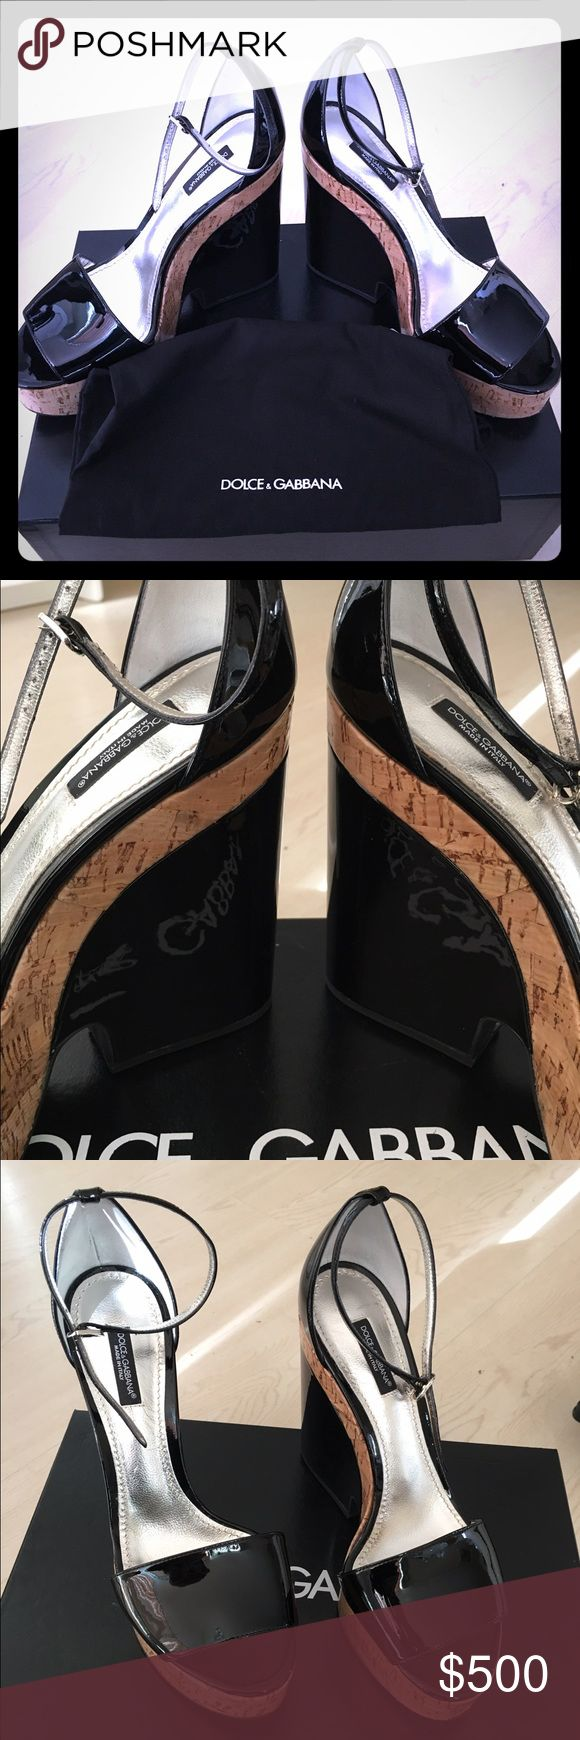 Dolce & Gabbana Zeppe + Sughero Wedges Perfect fun elegance for summertime! Authentic Dolce & Gabbana wedges. Black patent with cork accents. Never worn. Pristine condition. Fair offers will be accepted. Dolce & Gabbana Shoes Wedges